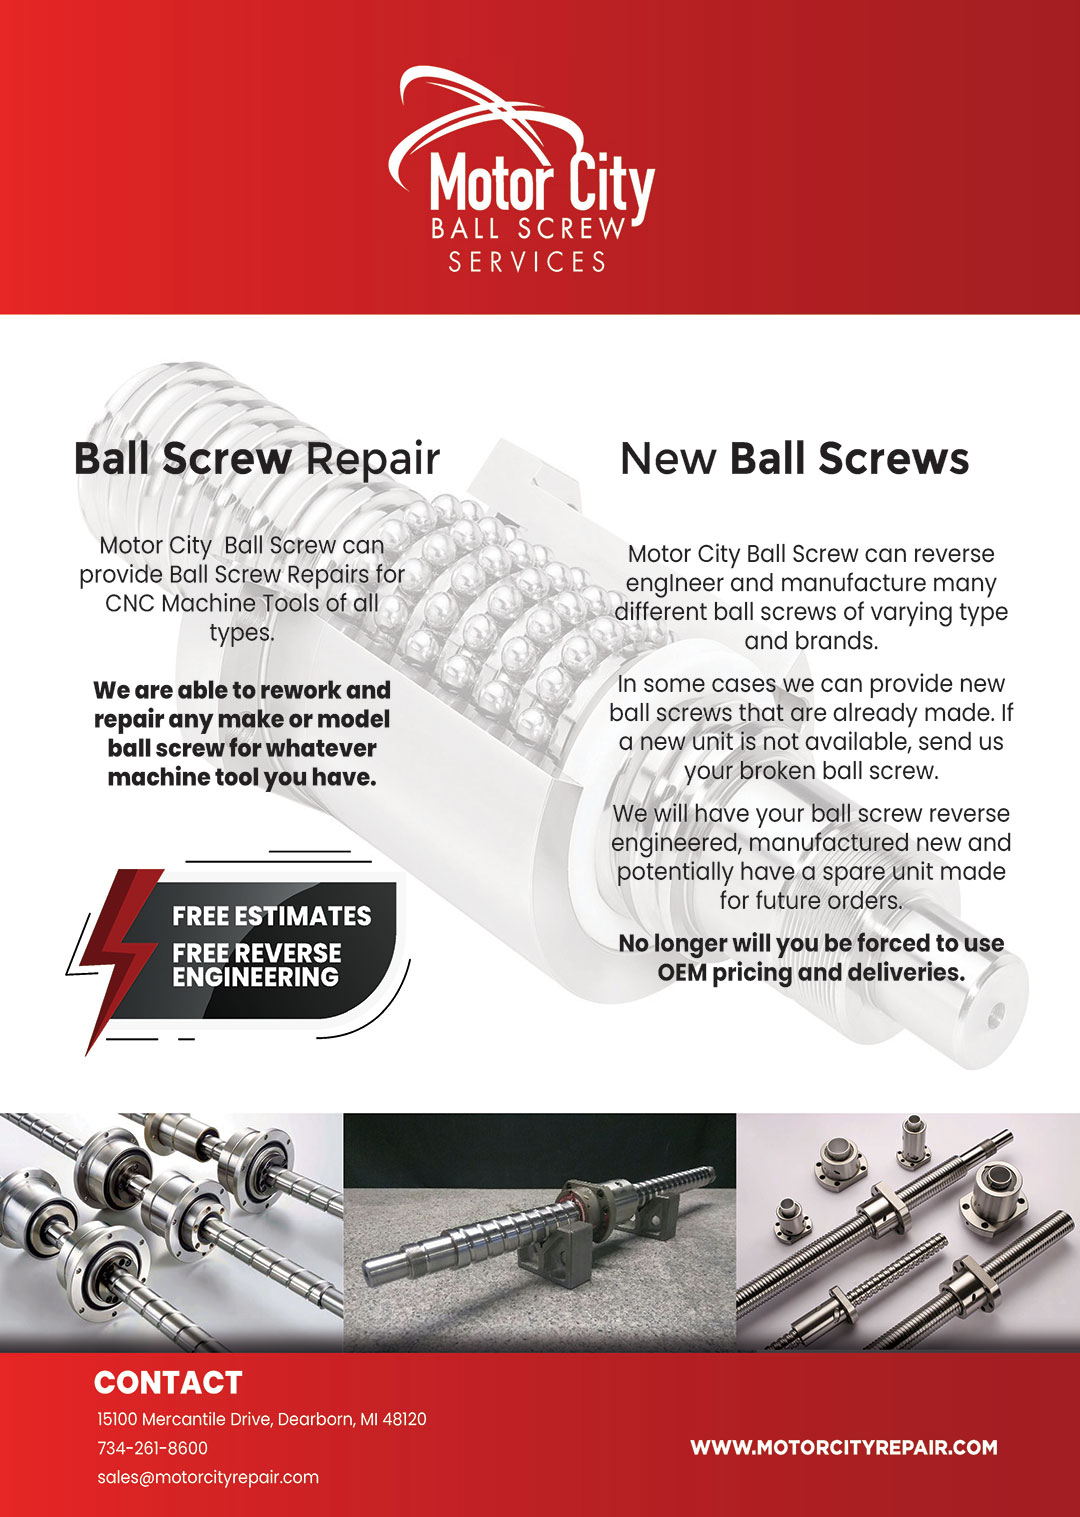 Ball Screw Repair  Free Ball Screw Reverse Engineering